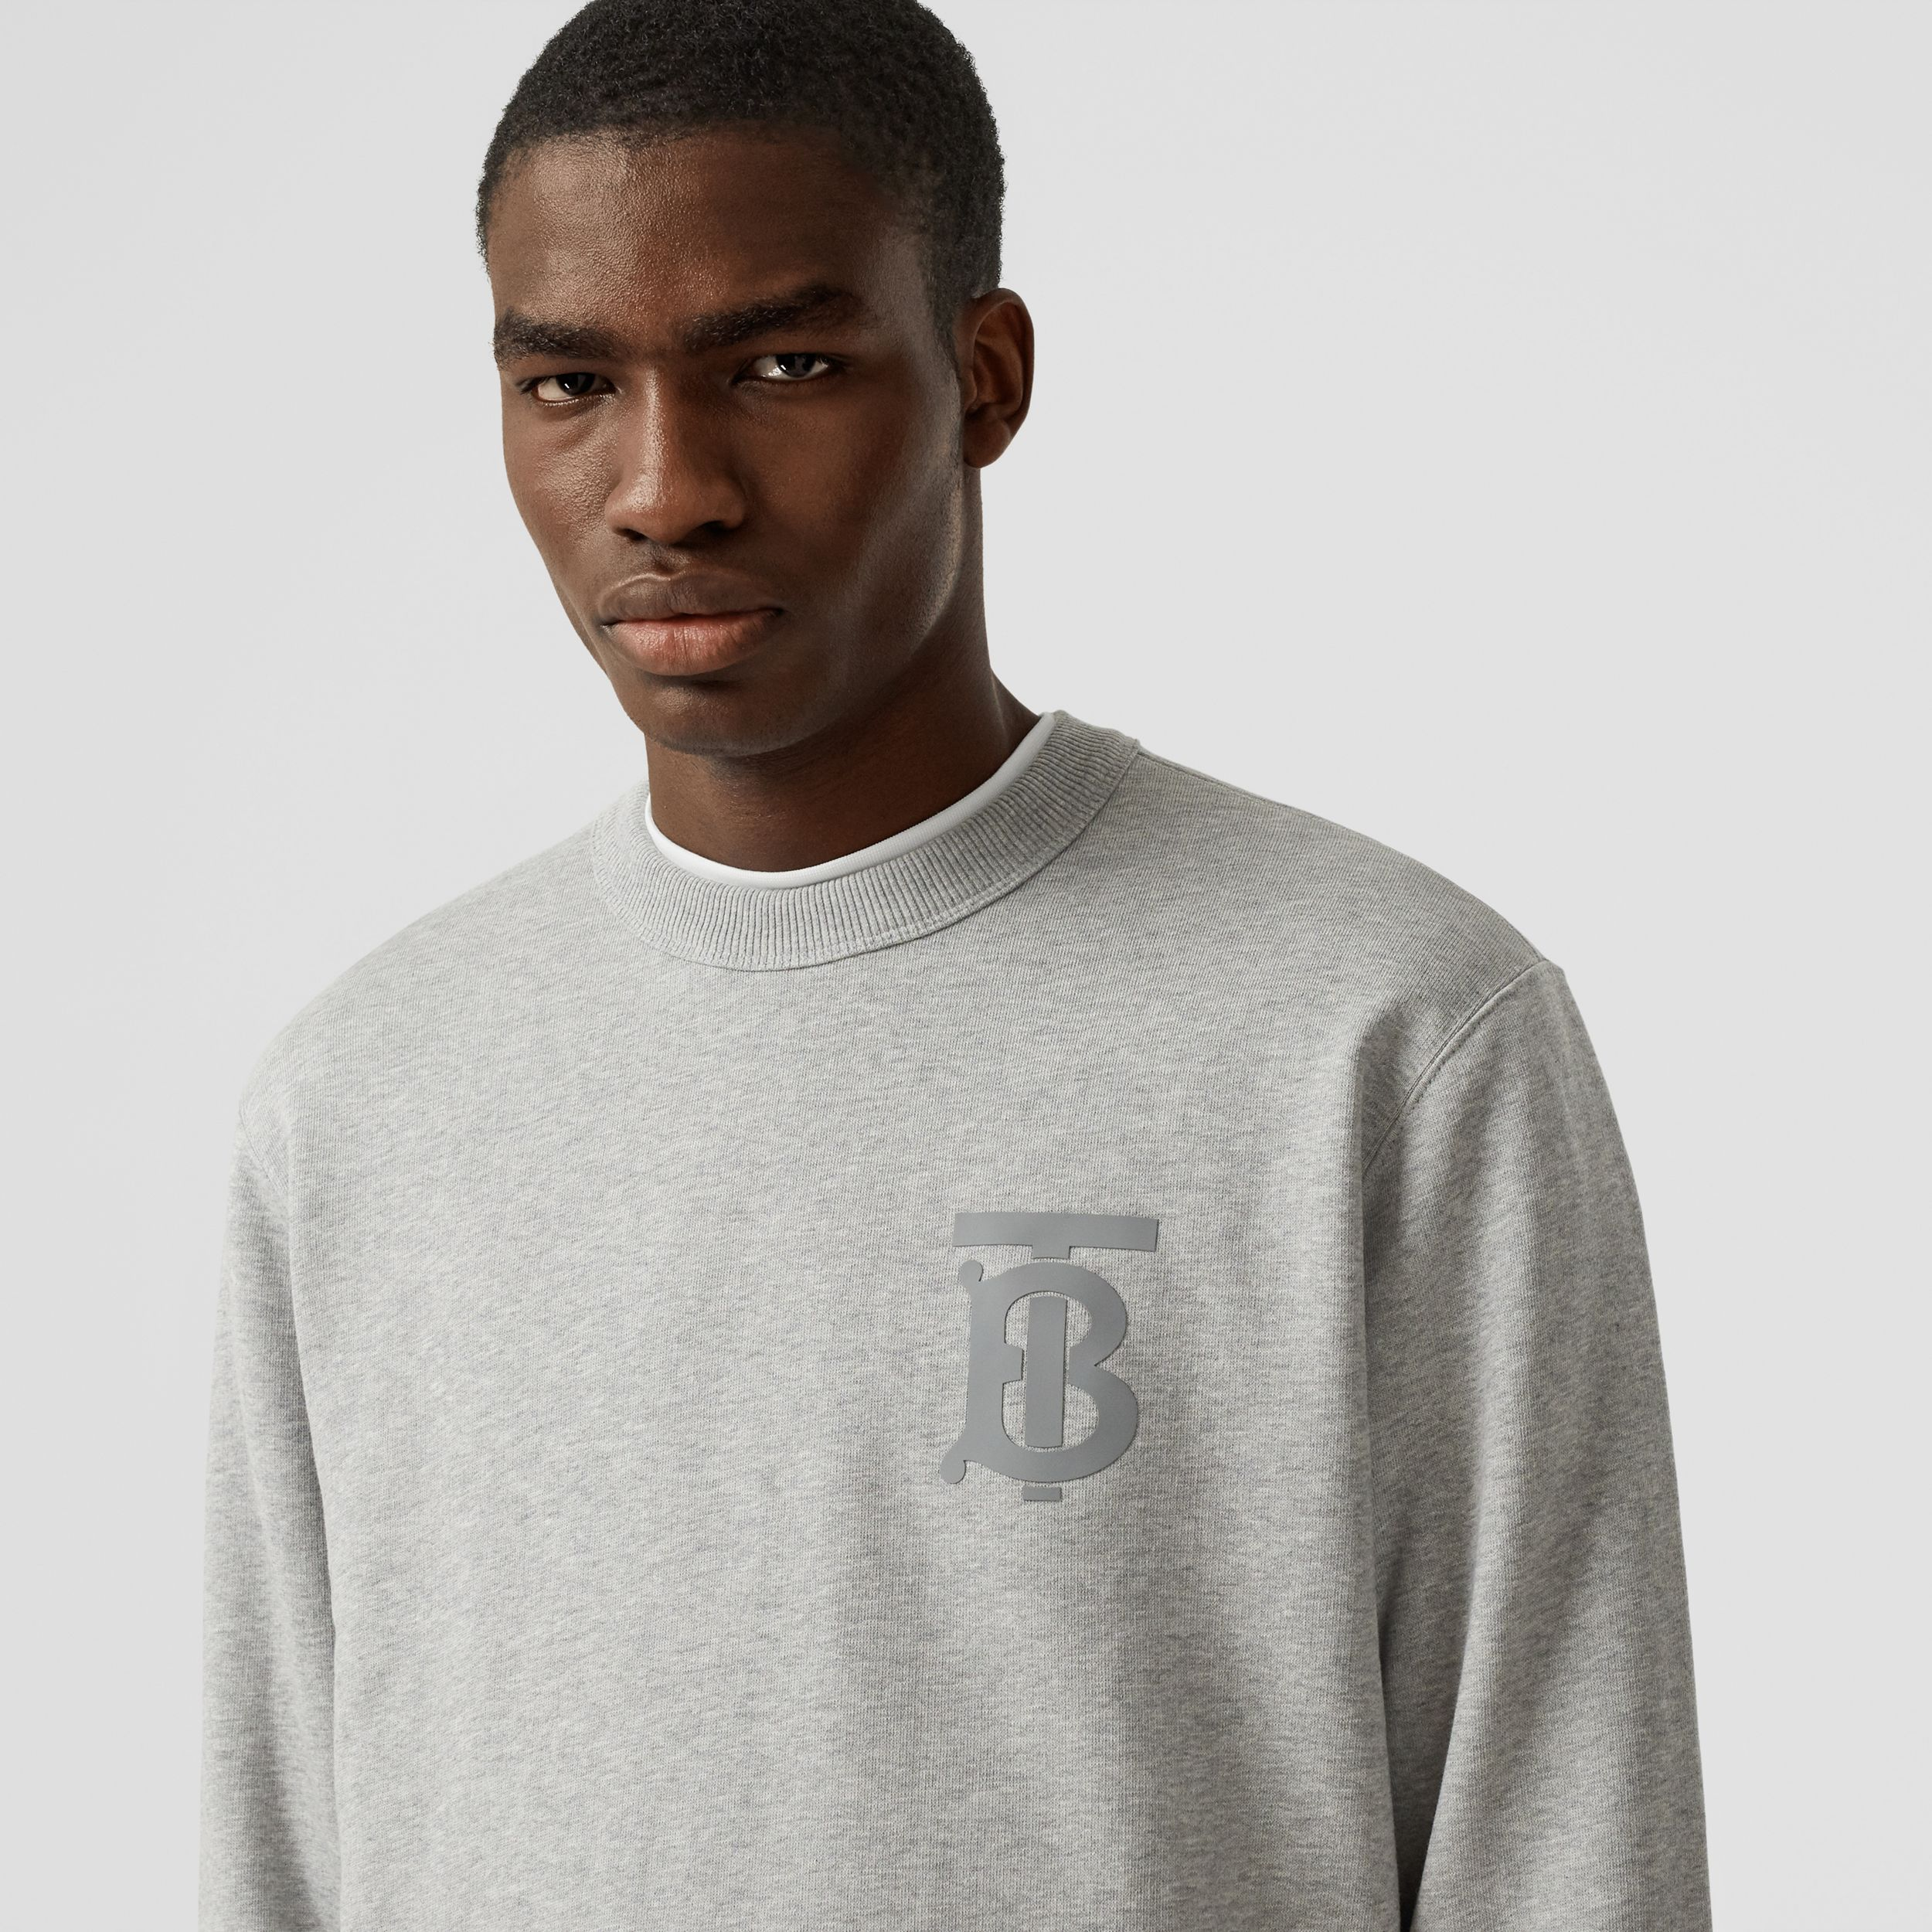 Monogram Motif Cotton Sweatshirt in Pale Grey Melange - Men | Burberry - 2